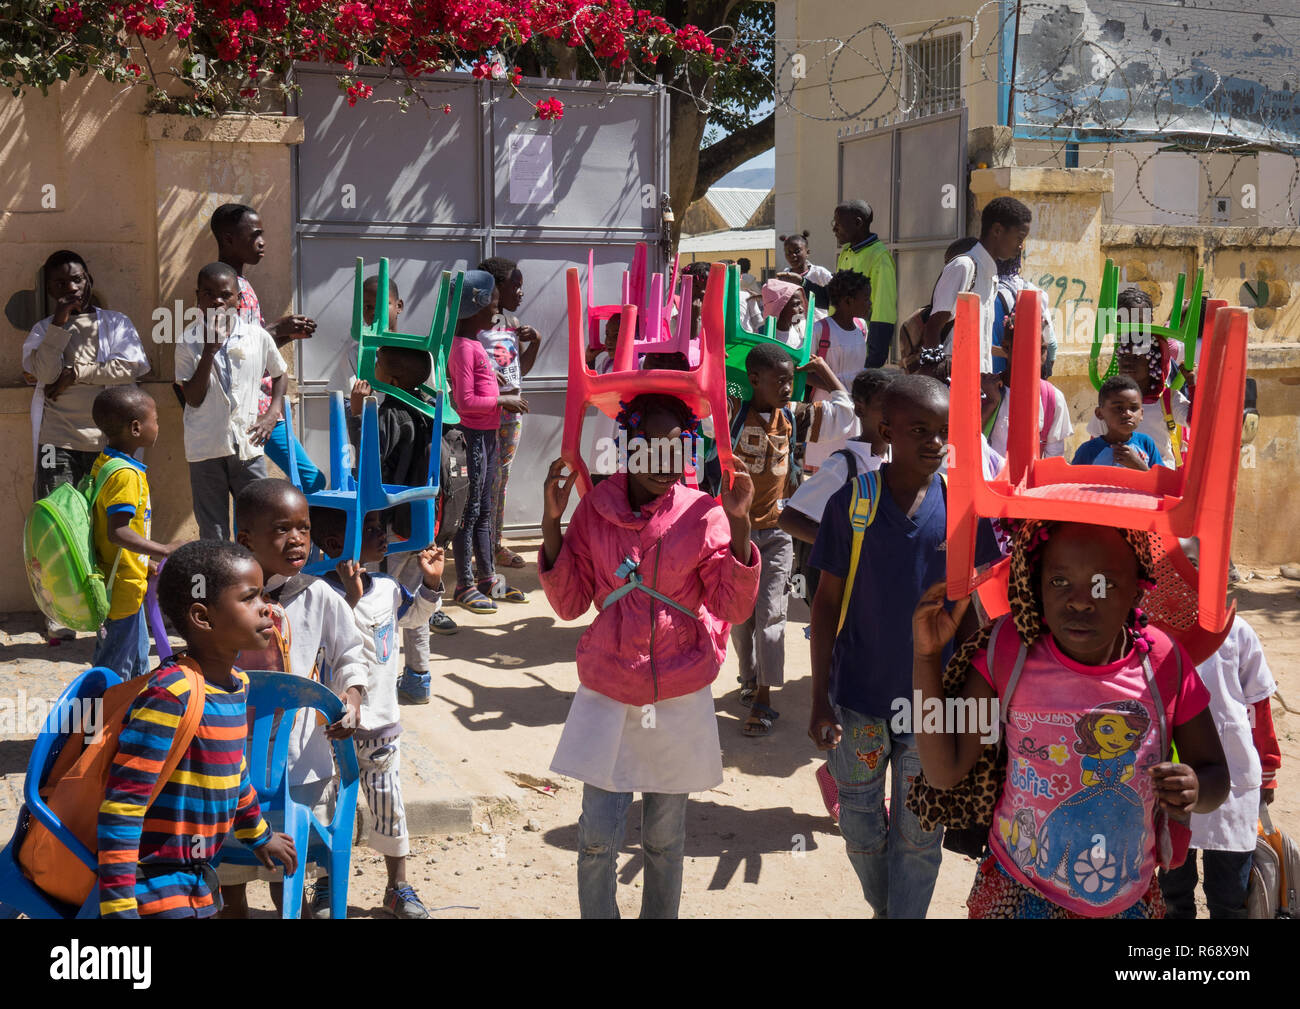 Children going to school with their own chairs, as there are not enough seats for all kids, Huila Province, Lubango, Angola - Stock Image